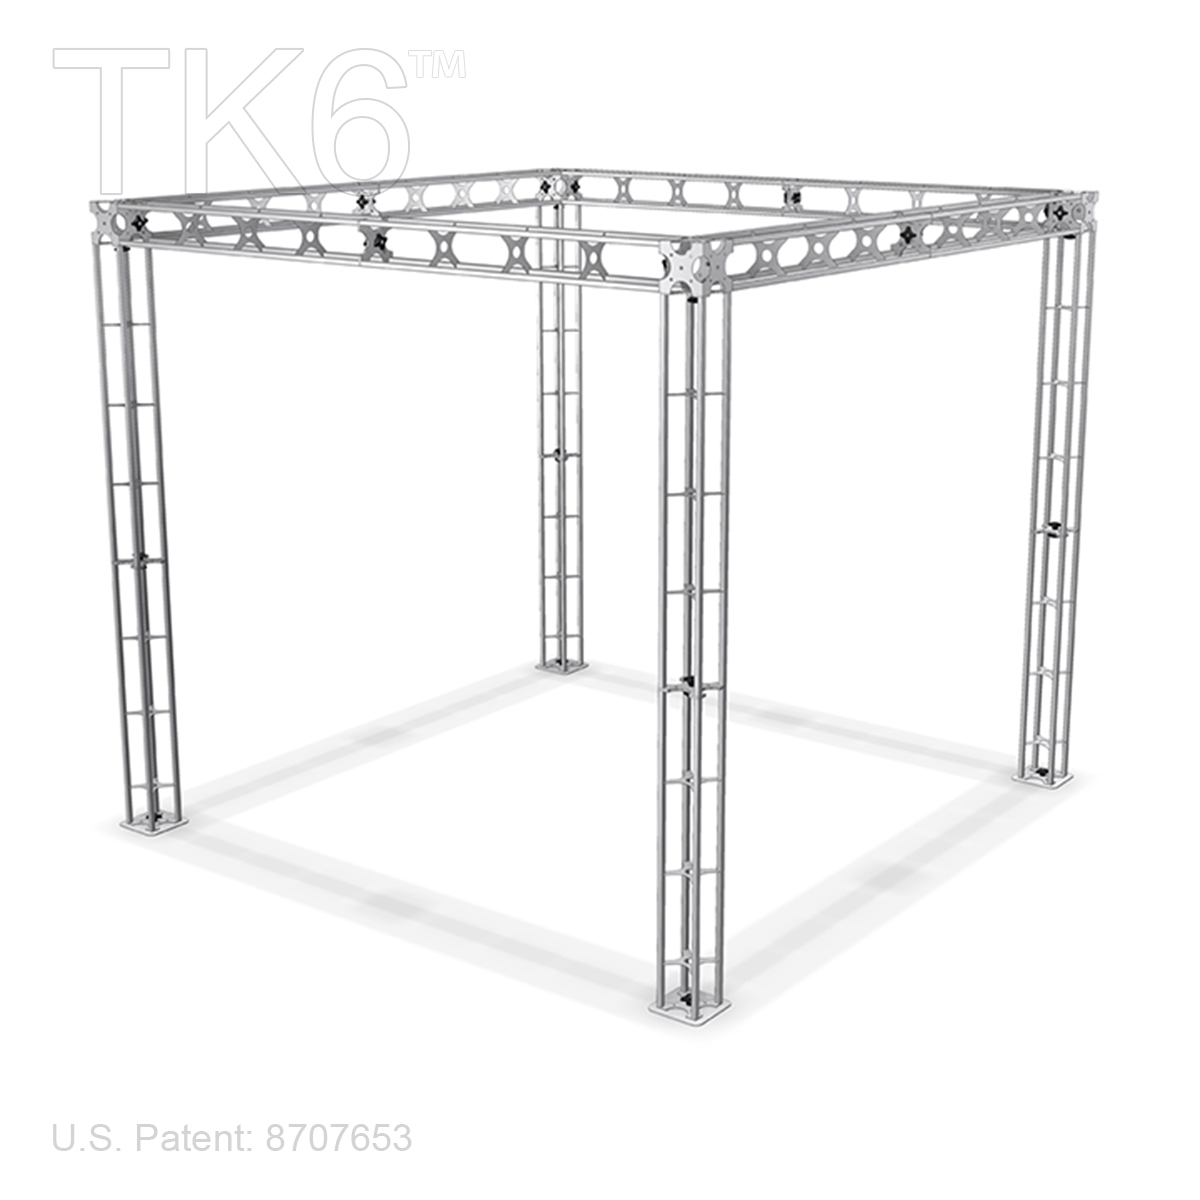 Bethel 10ft X 10ft Aluminum Box Truss Display Booth Frame